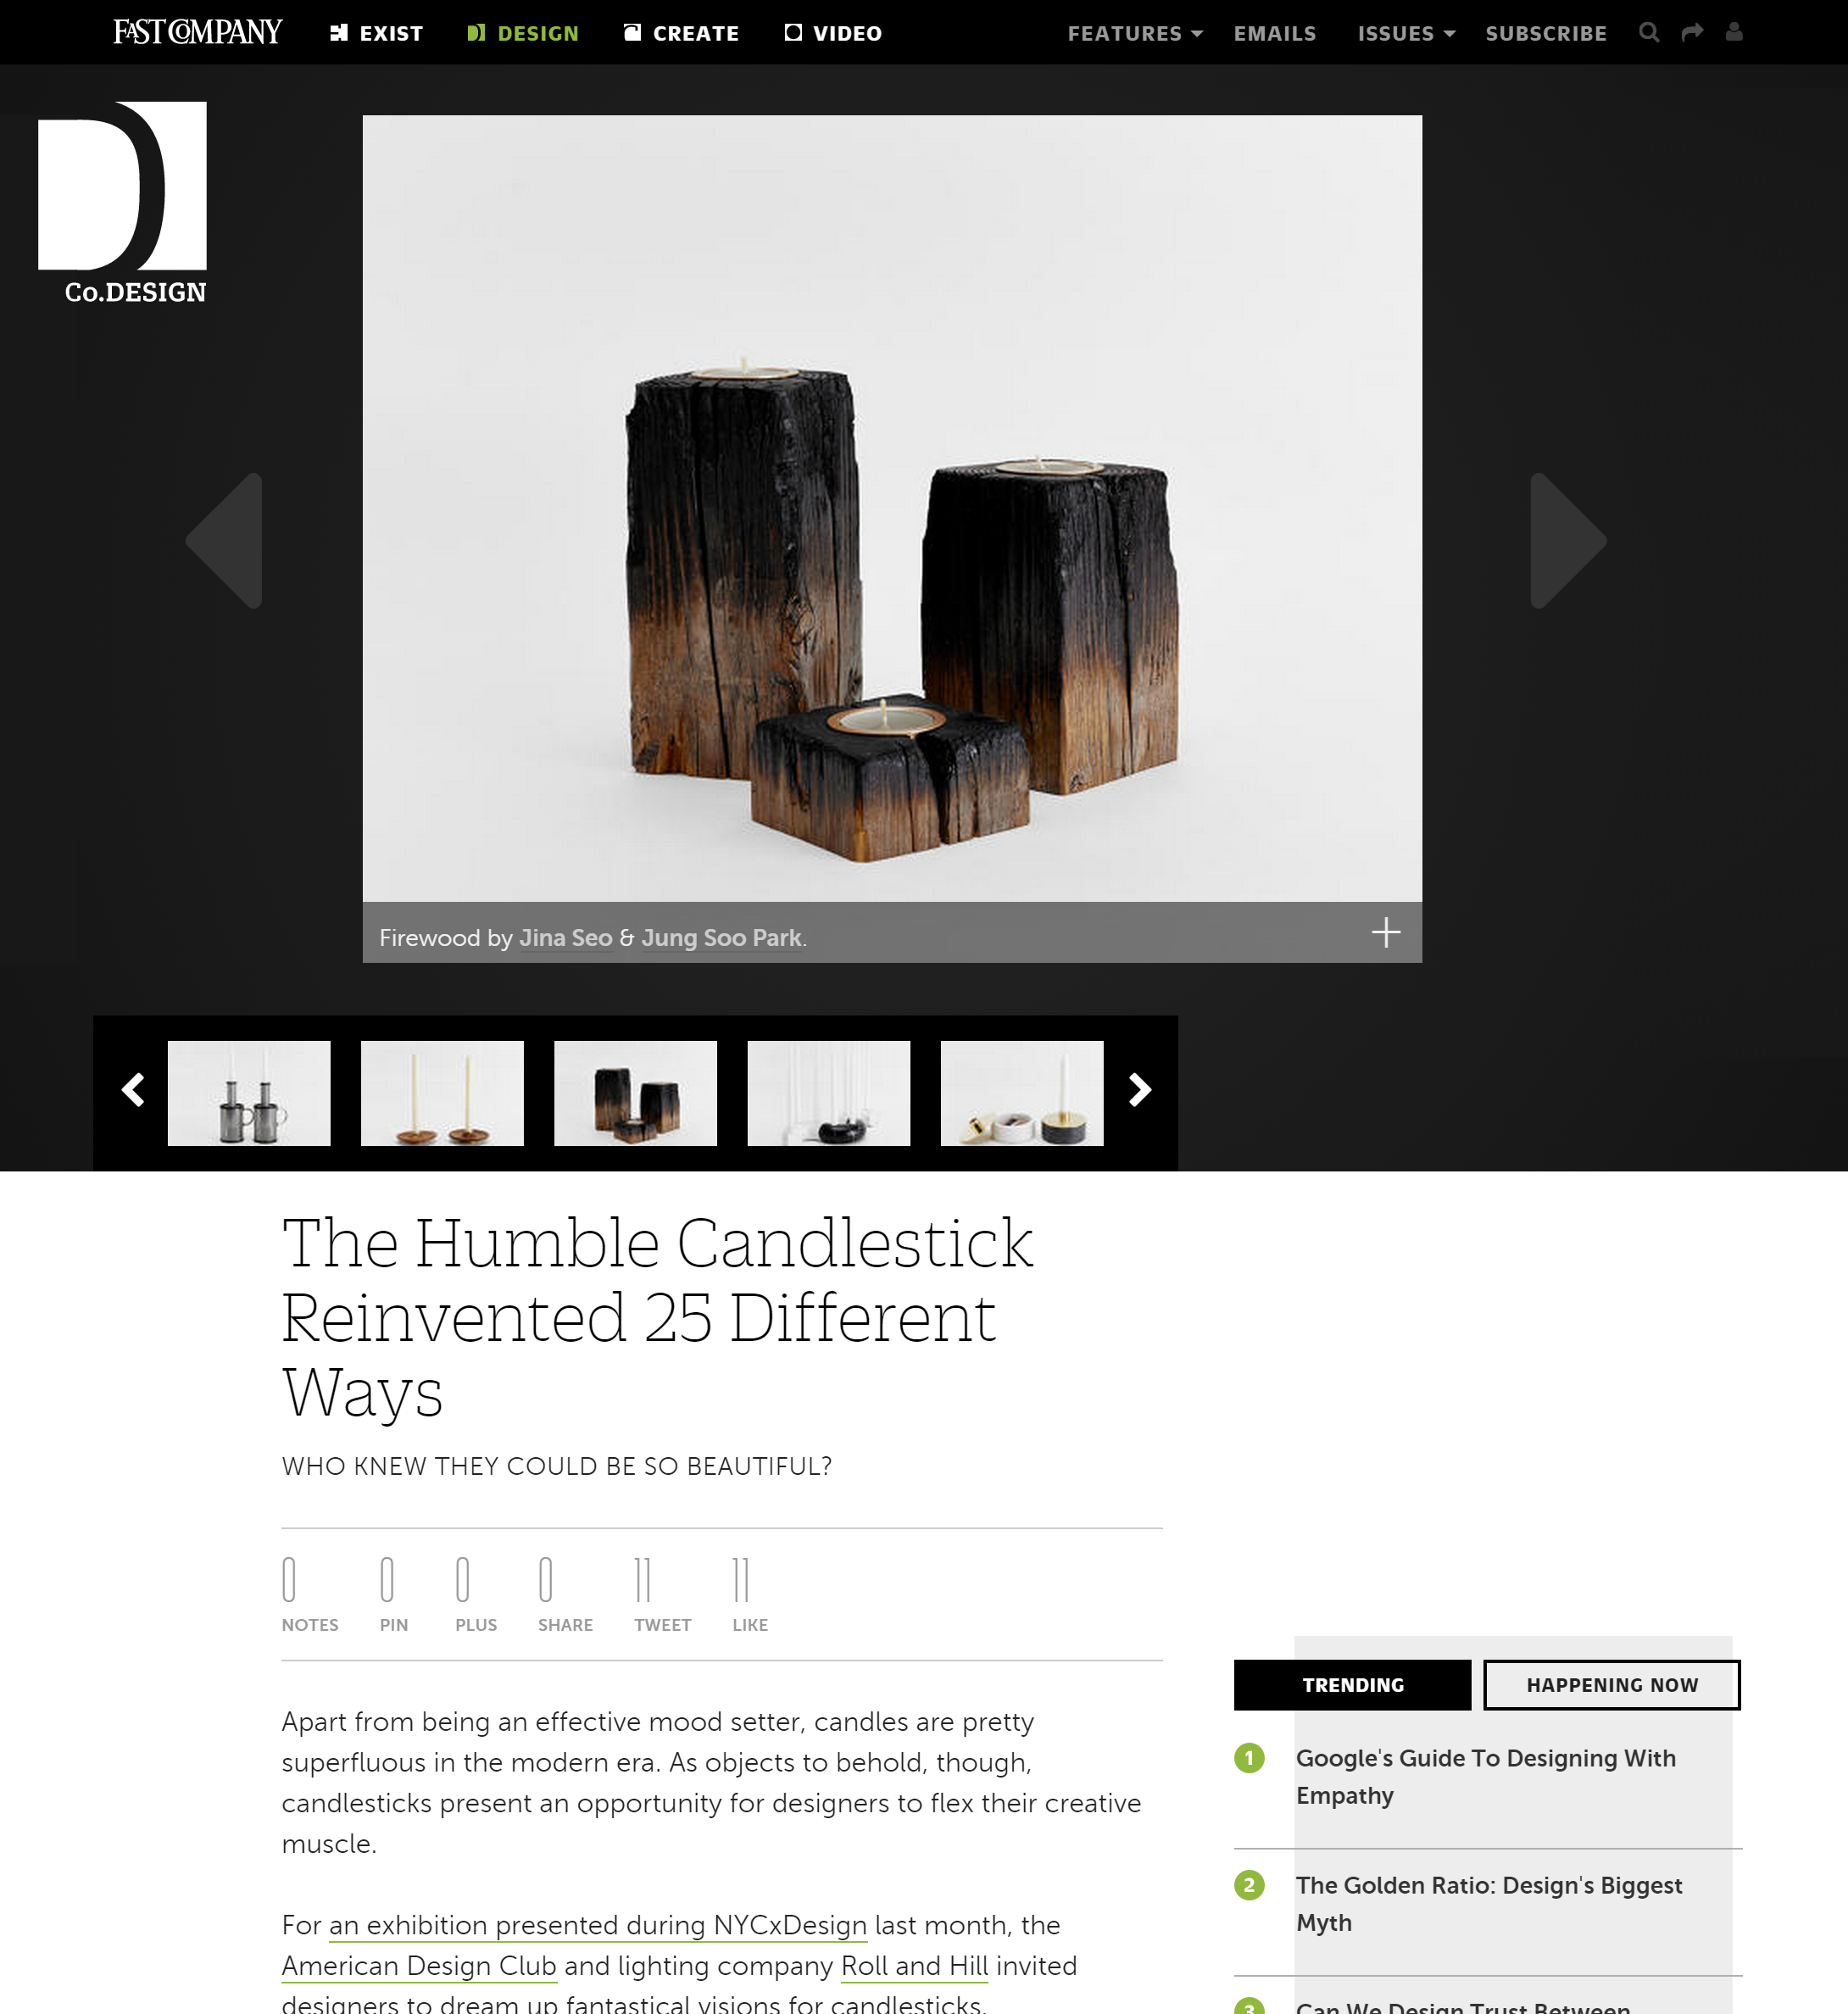 screencapture-www-fastcodesign-com-3047626-the-humble-candlestick-reinvented-25-different-ways-1434735087498.png